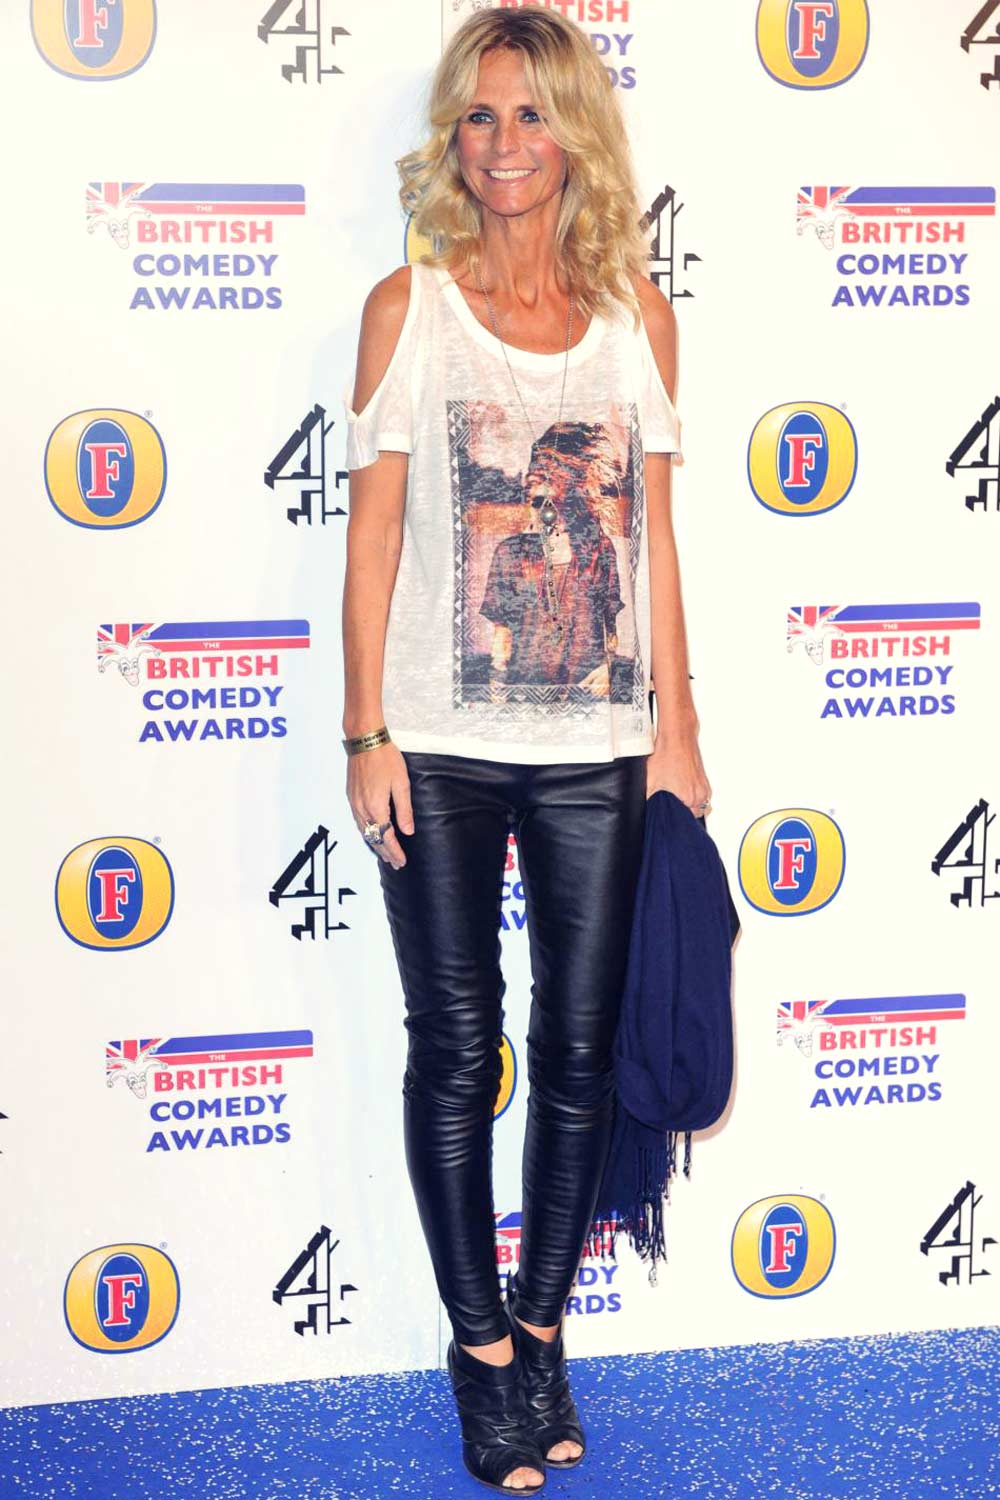 Ulrika Jonsson attends British Comedy Awards